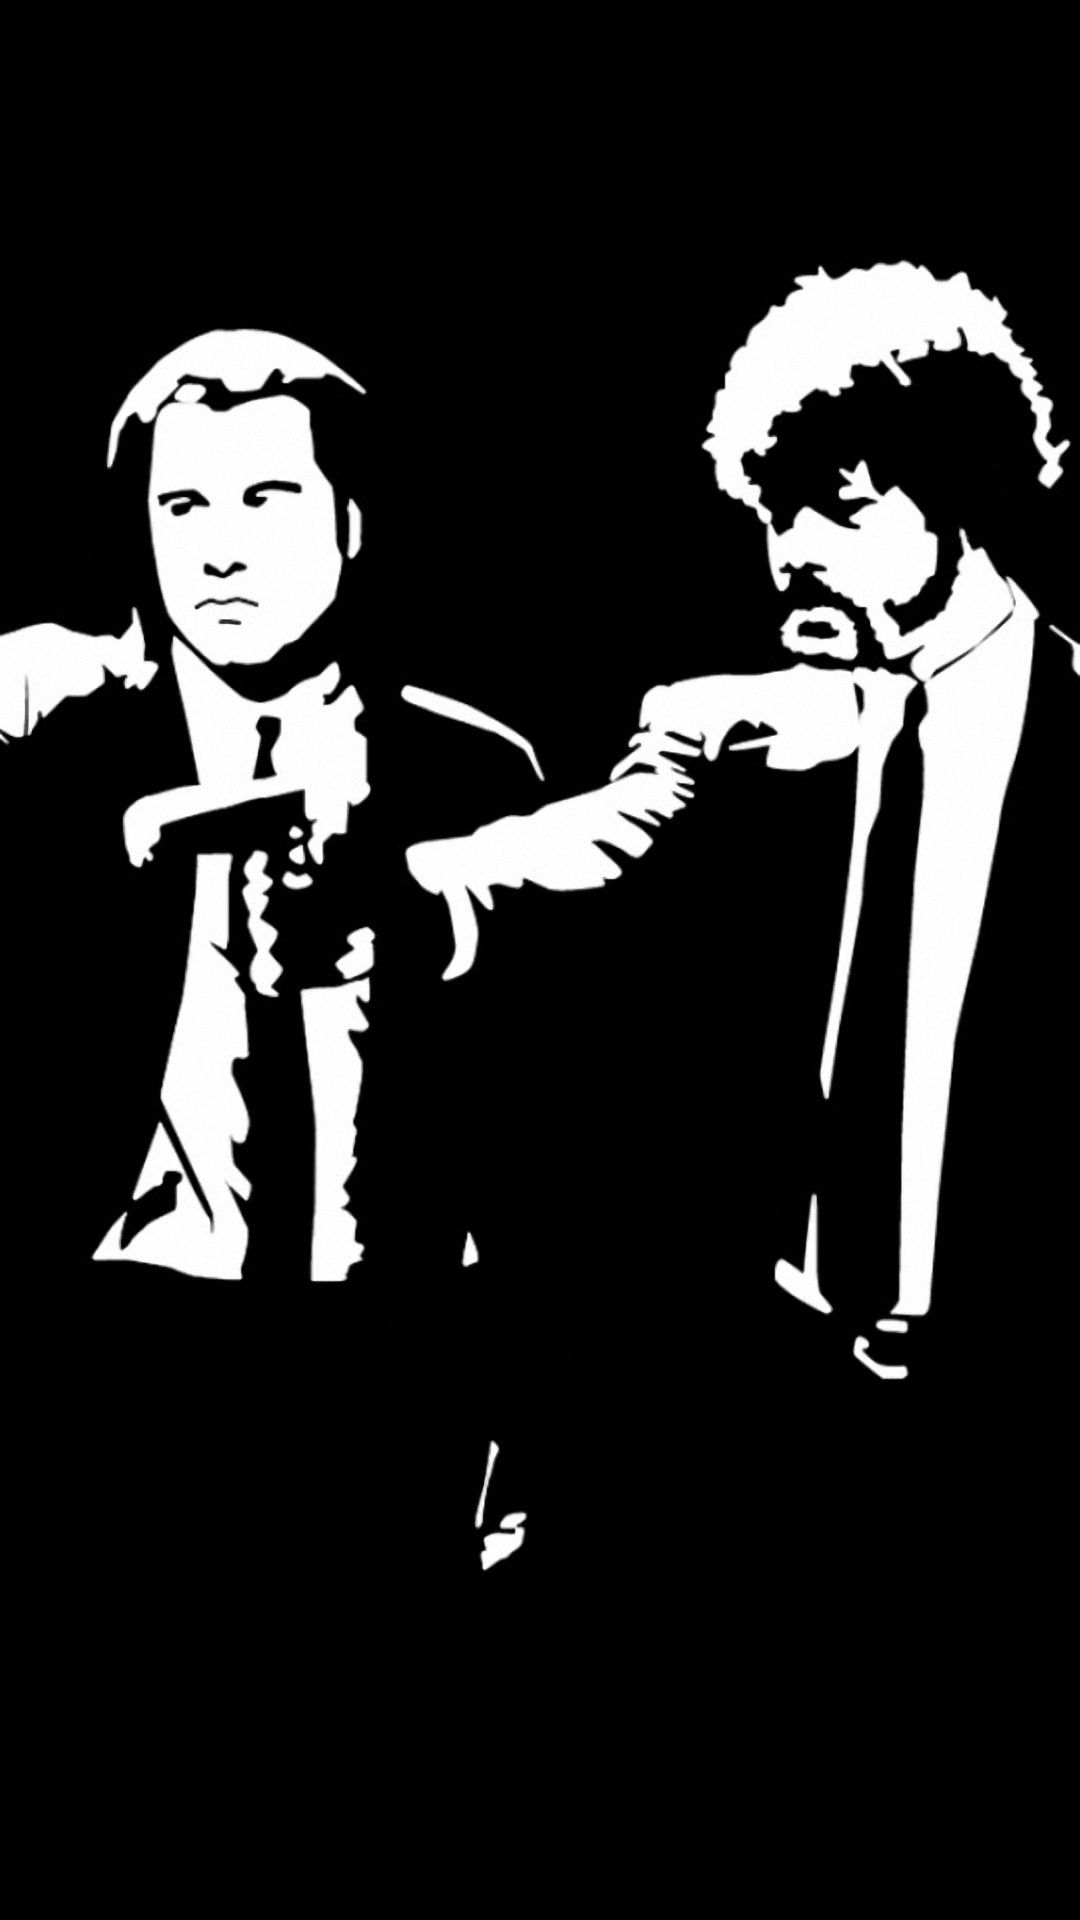 Mobile Users Rejoice Mobile Wallpapers For Ya Tarantino Pulp Fiction Pulp Fiction Quentin Tarantino Pulp Fiction